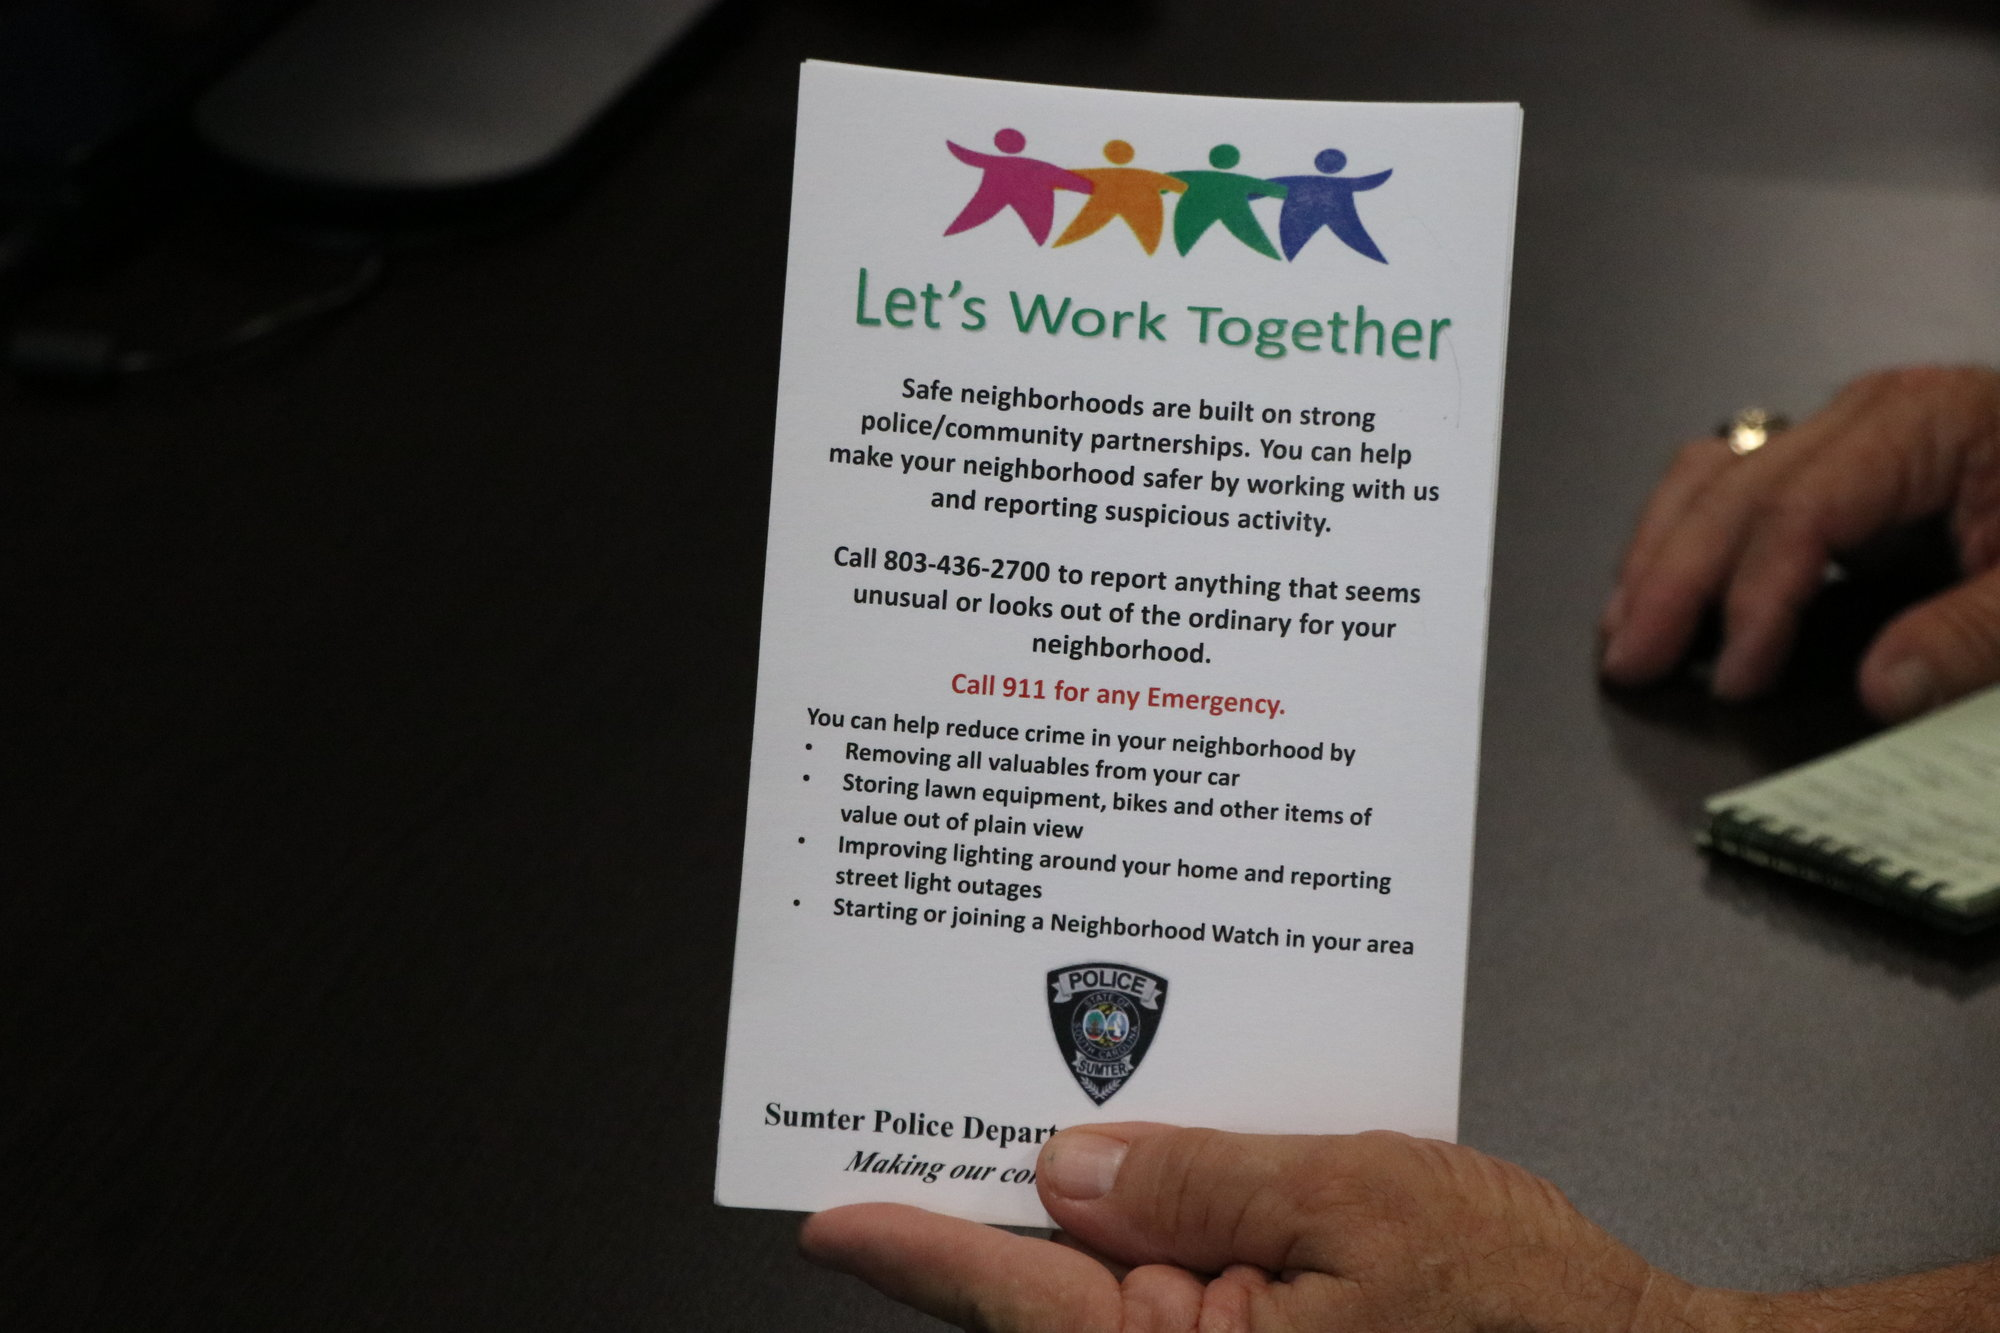 Annual campaign brings police, community together to address